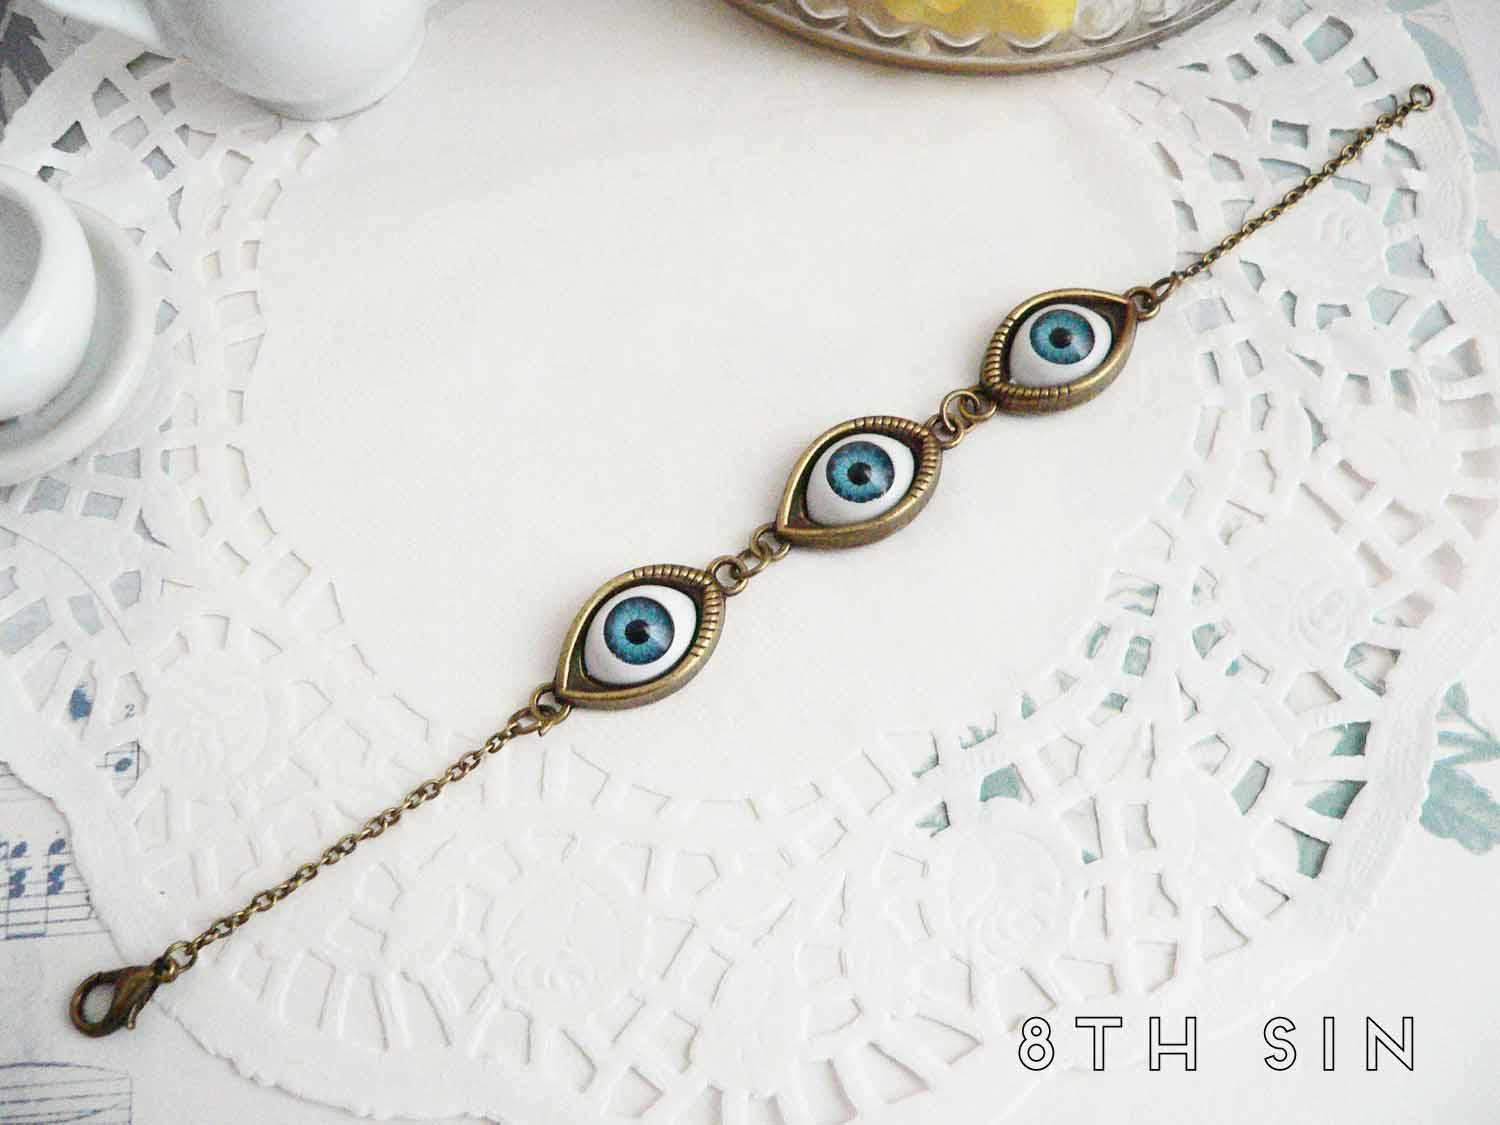 antique bronze and blue evil eye bracelet